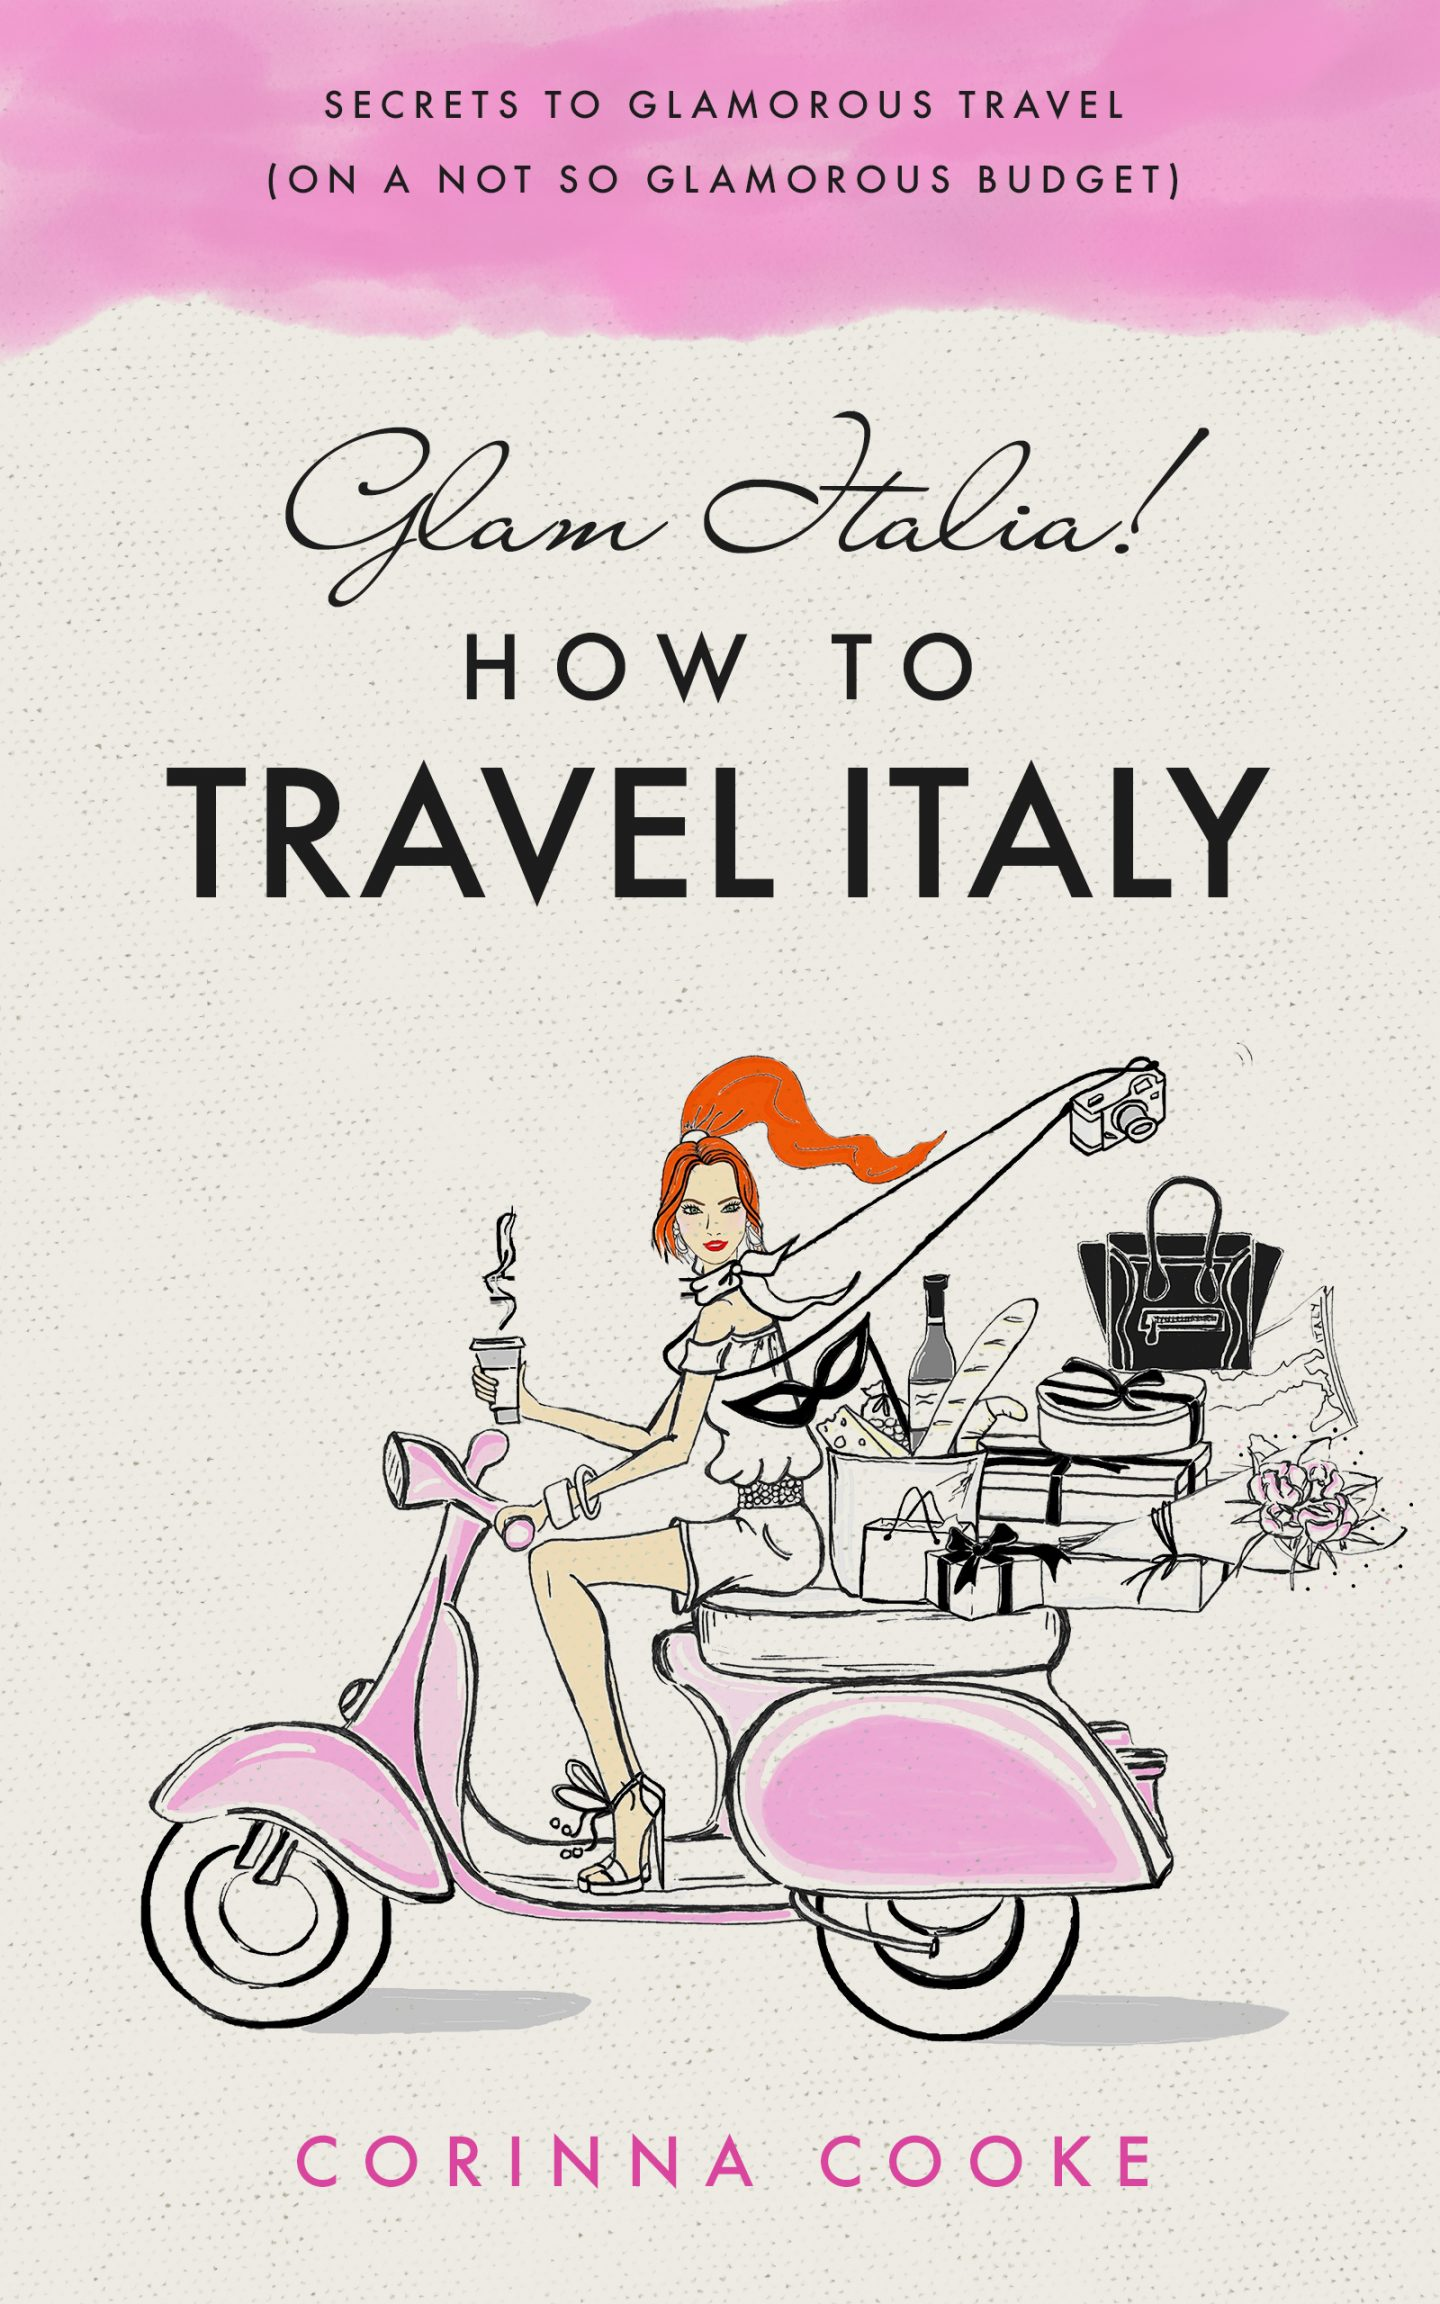 Glam Italia! How To Travel Italy (Secrets To Glamorous Travel On A Not So Glamorous Budget